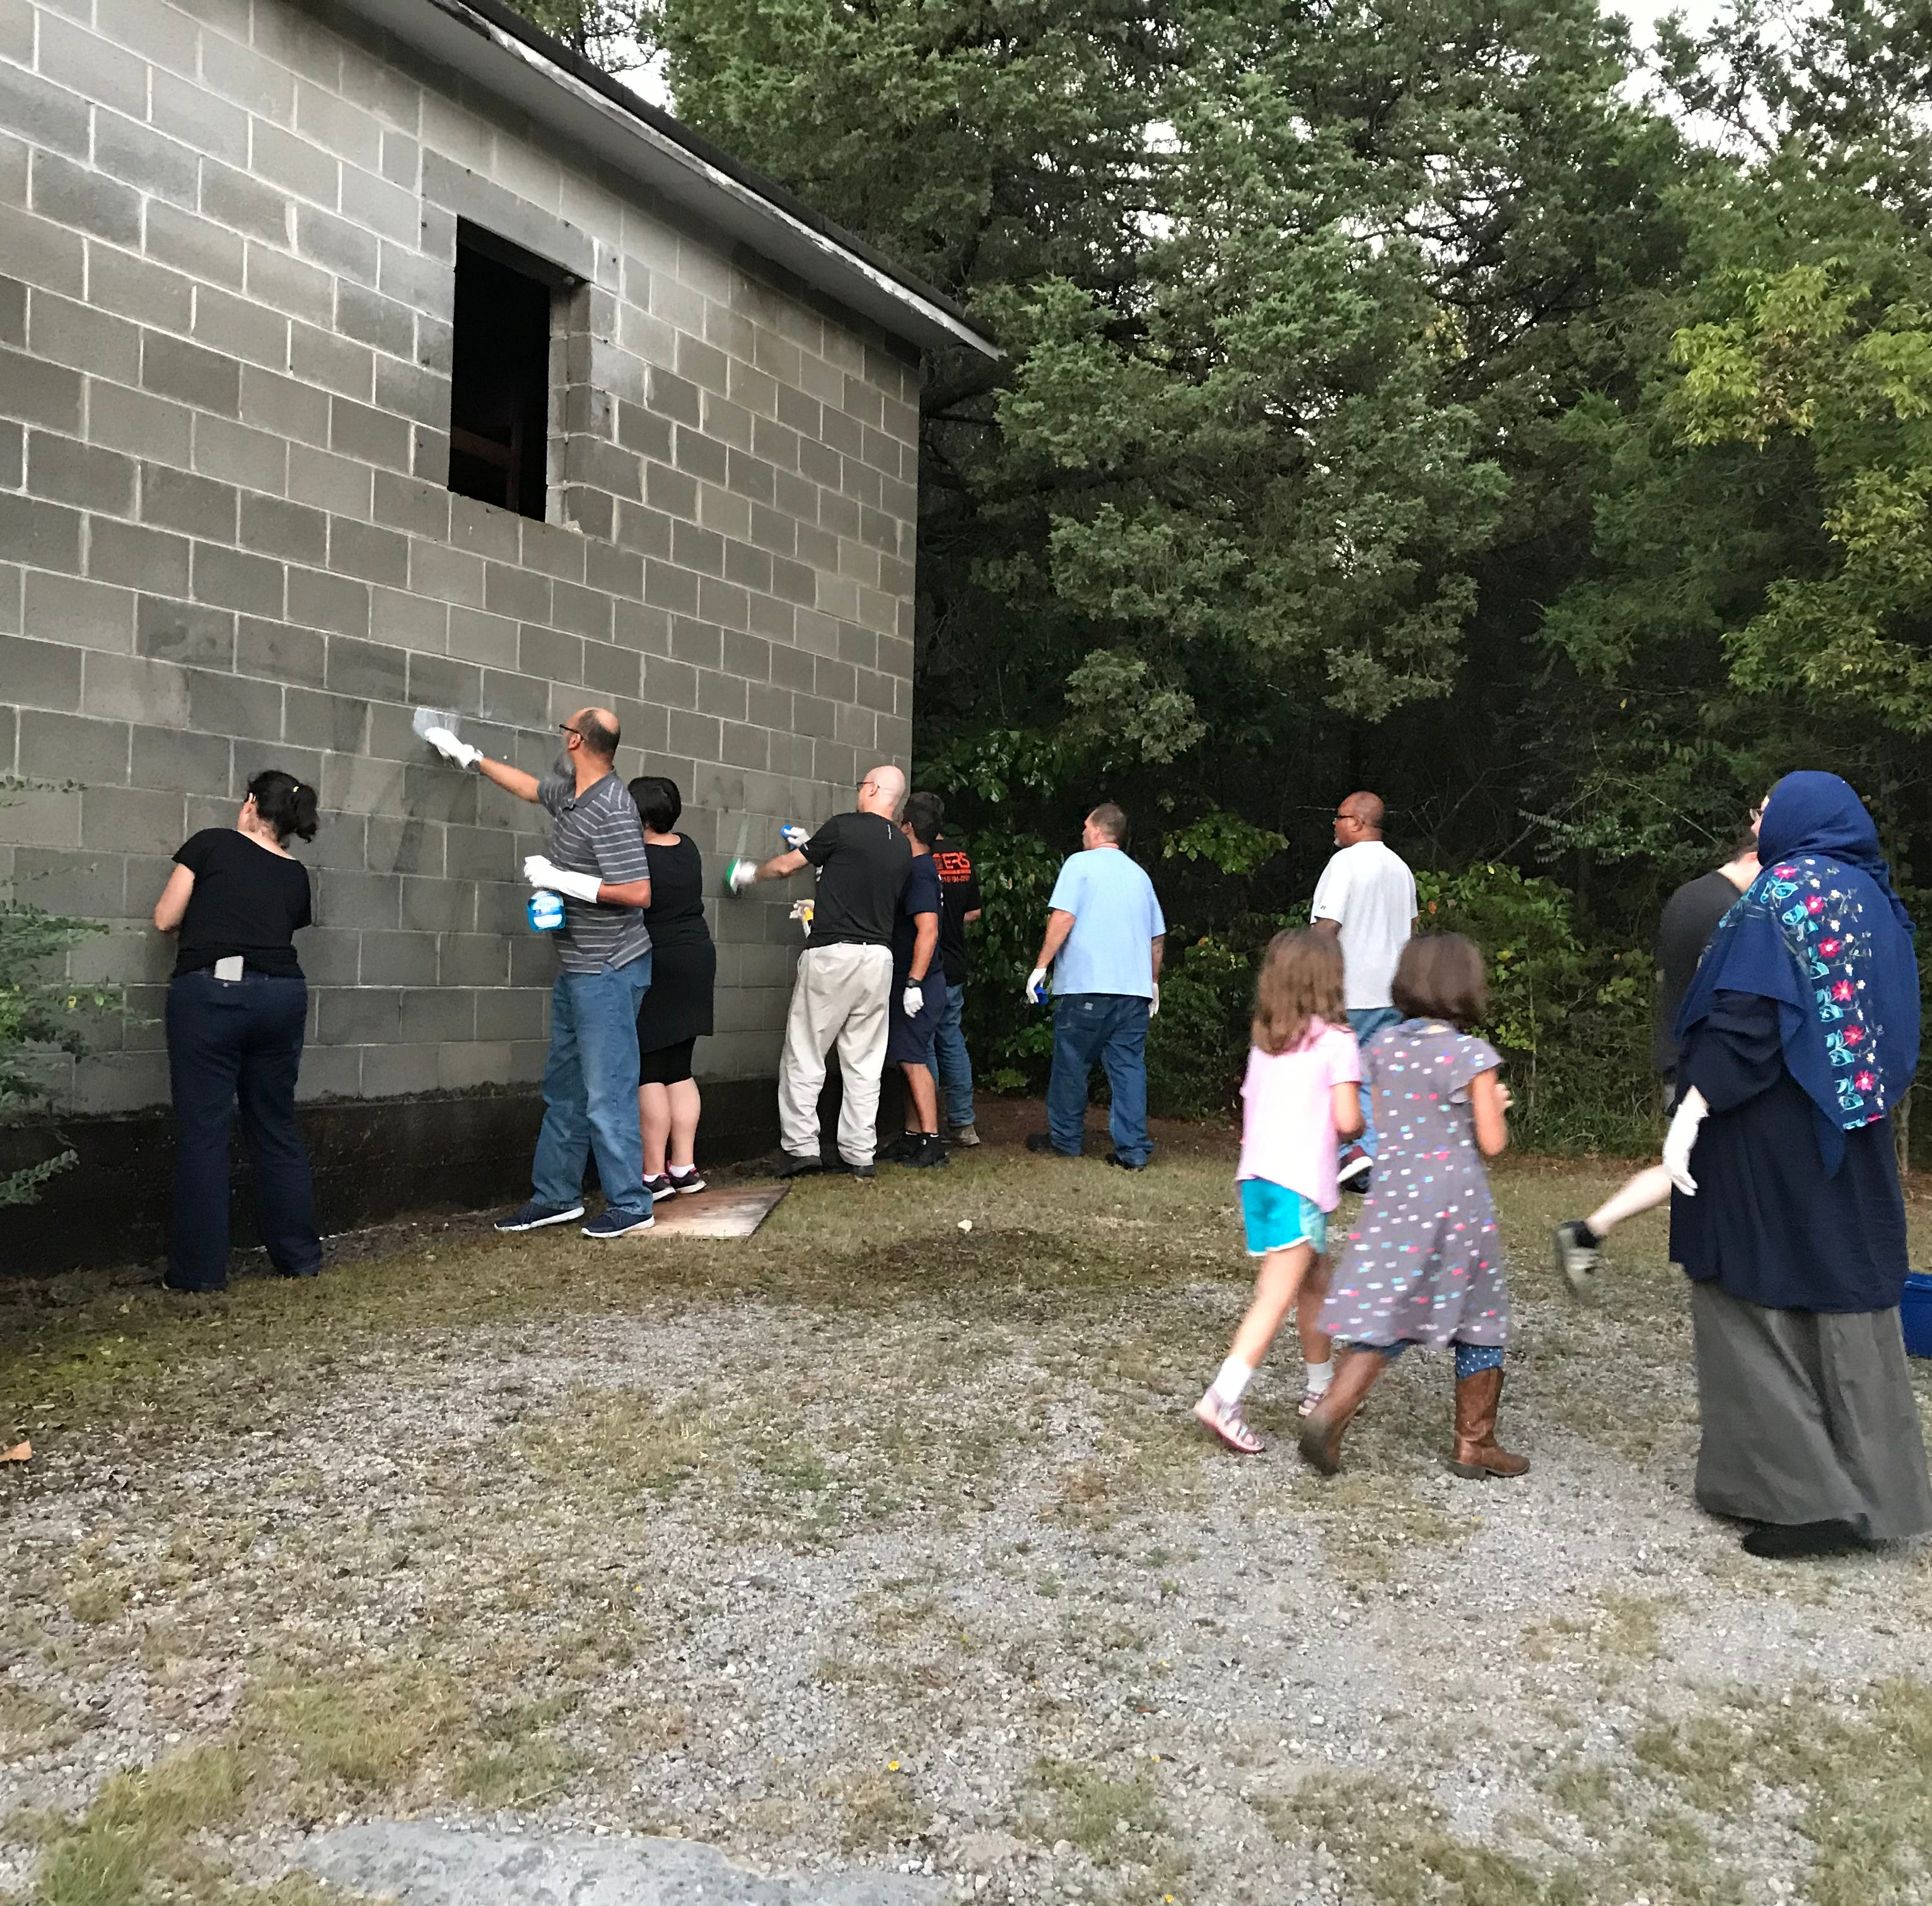 Murfreesboro community gathers to clean 'white power' vandalism at predominantly black church